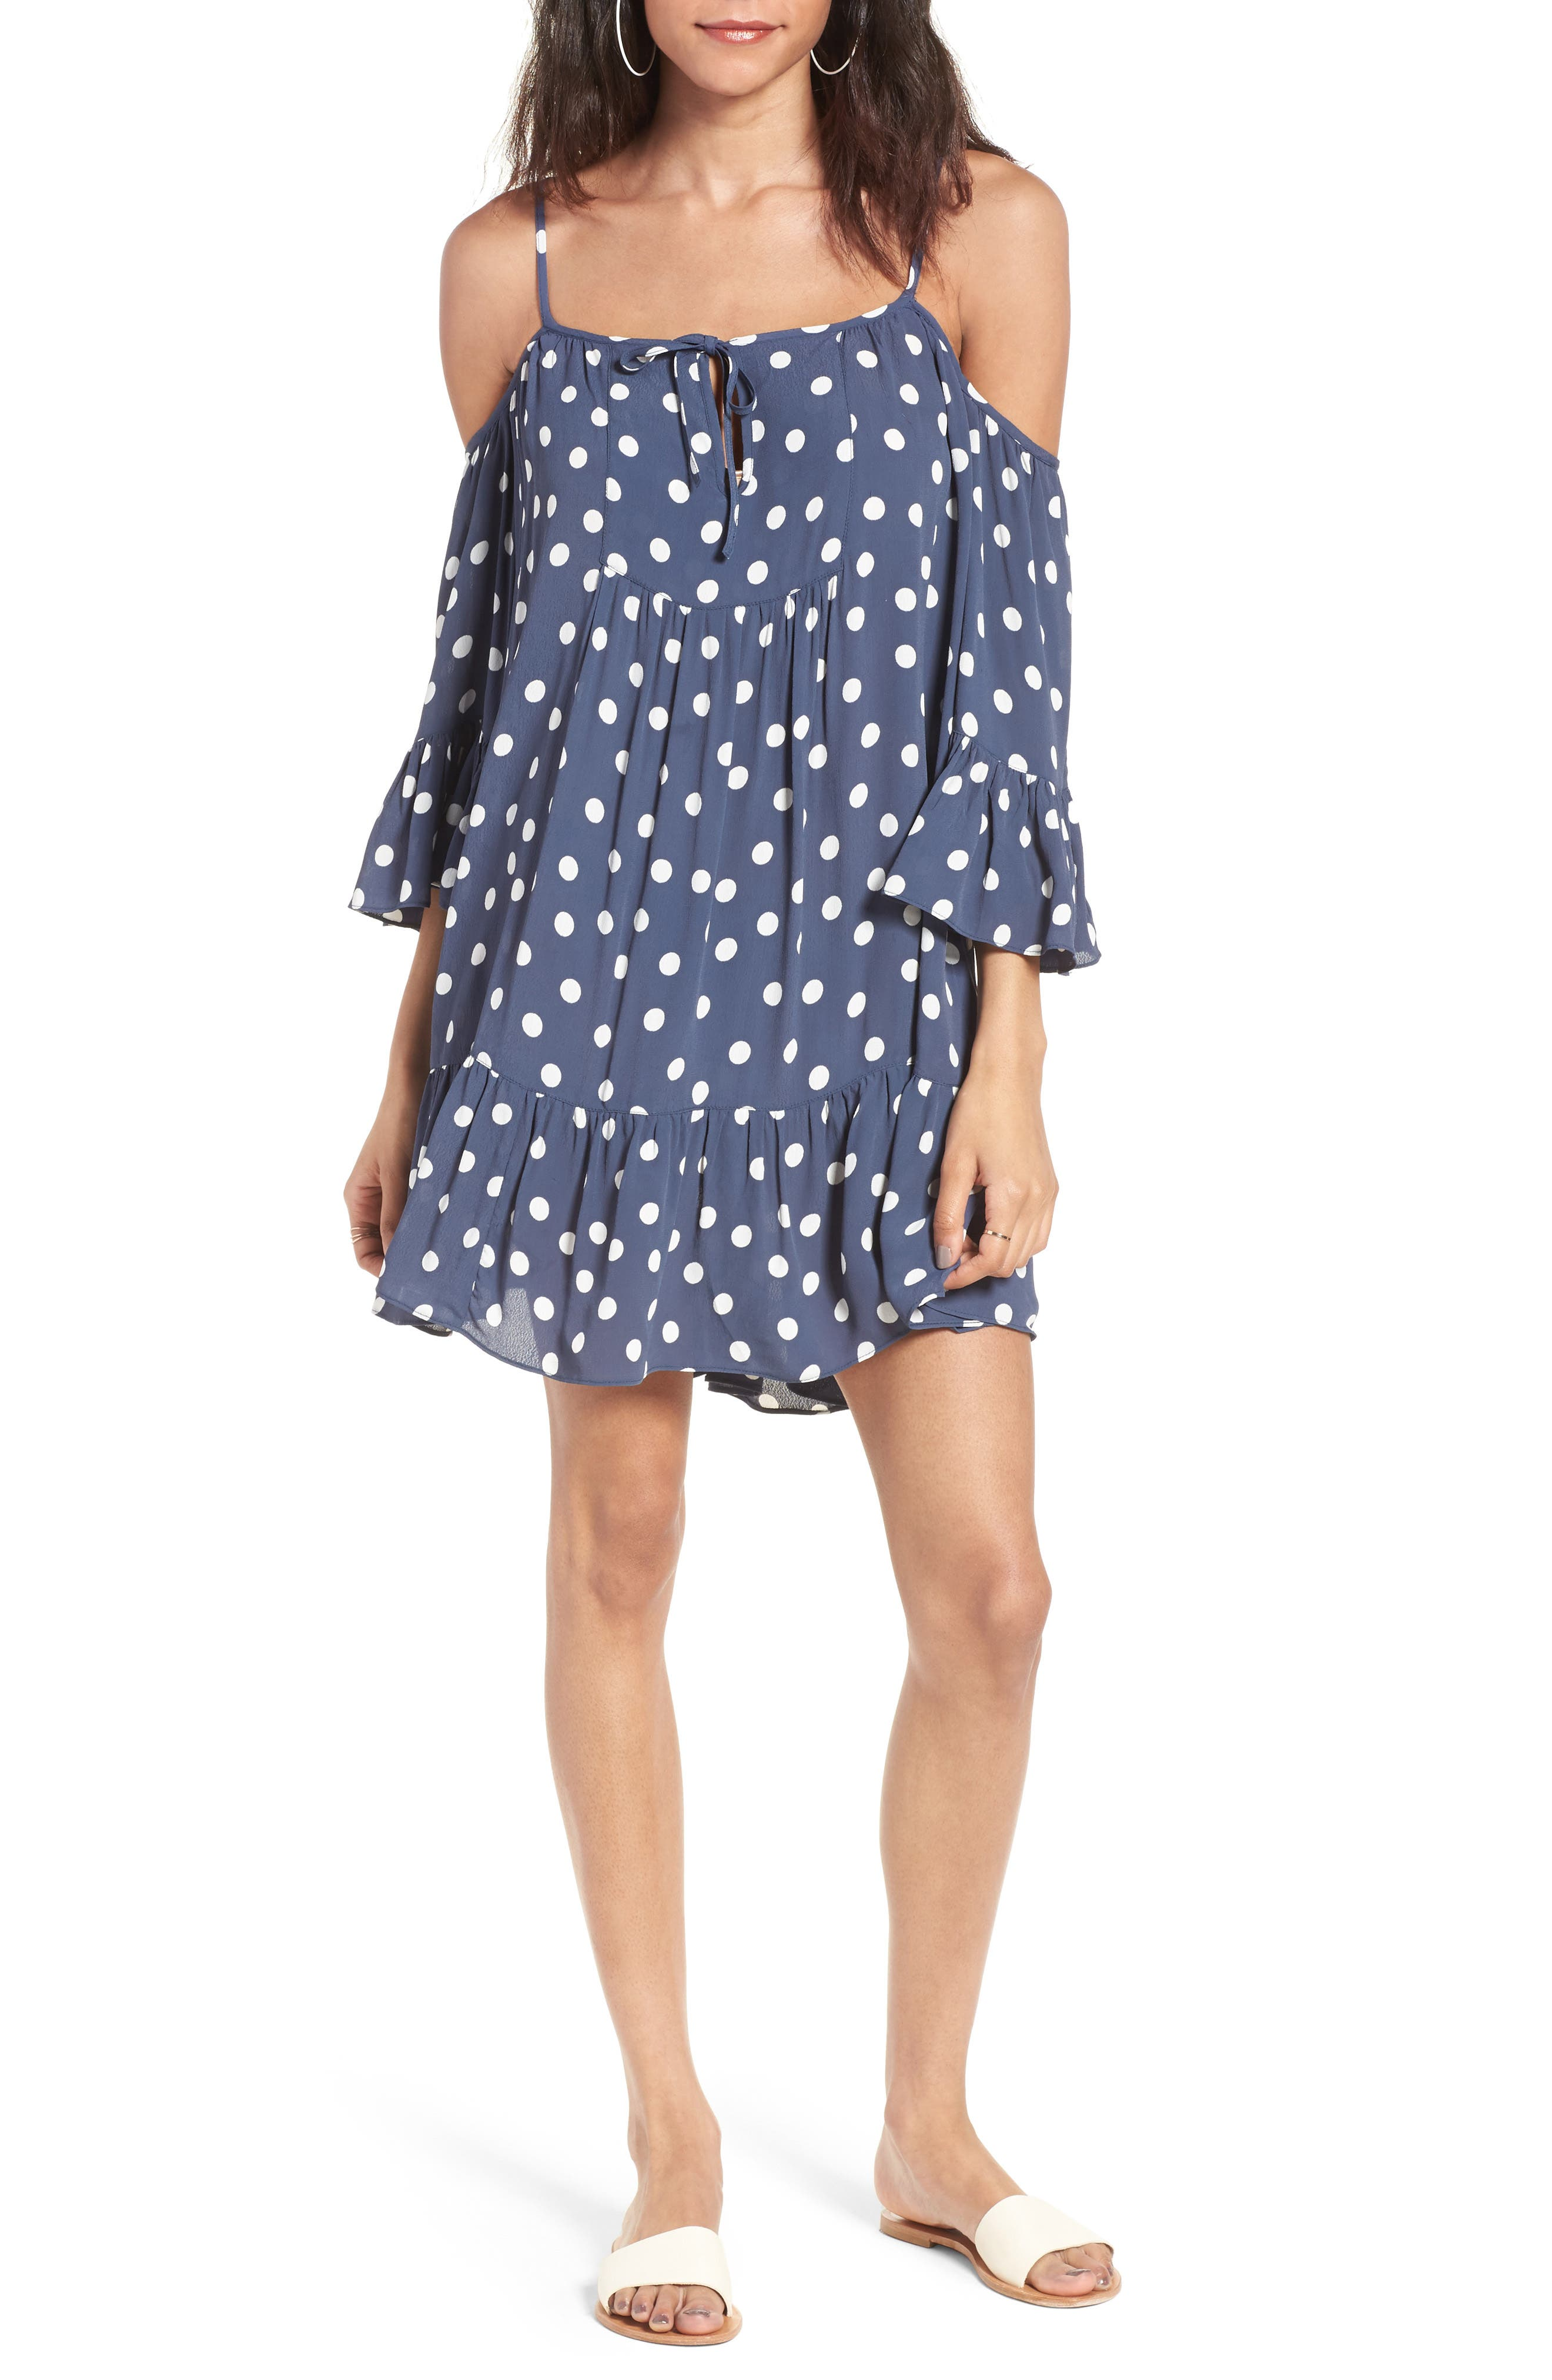 Alternate Image 1 Selected - Tularosa Hattie Shift Dress (Nordstrom Exclusive)